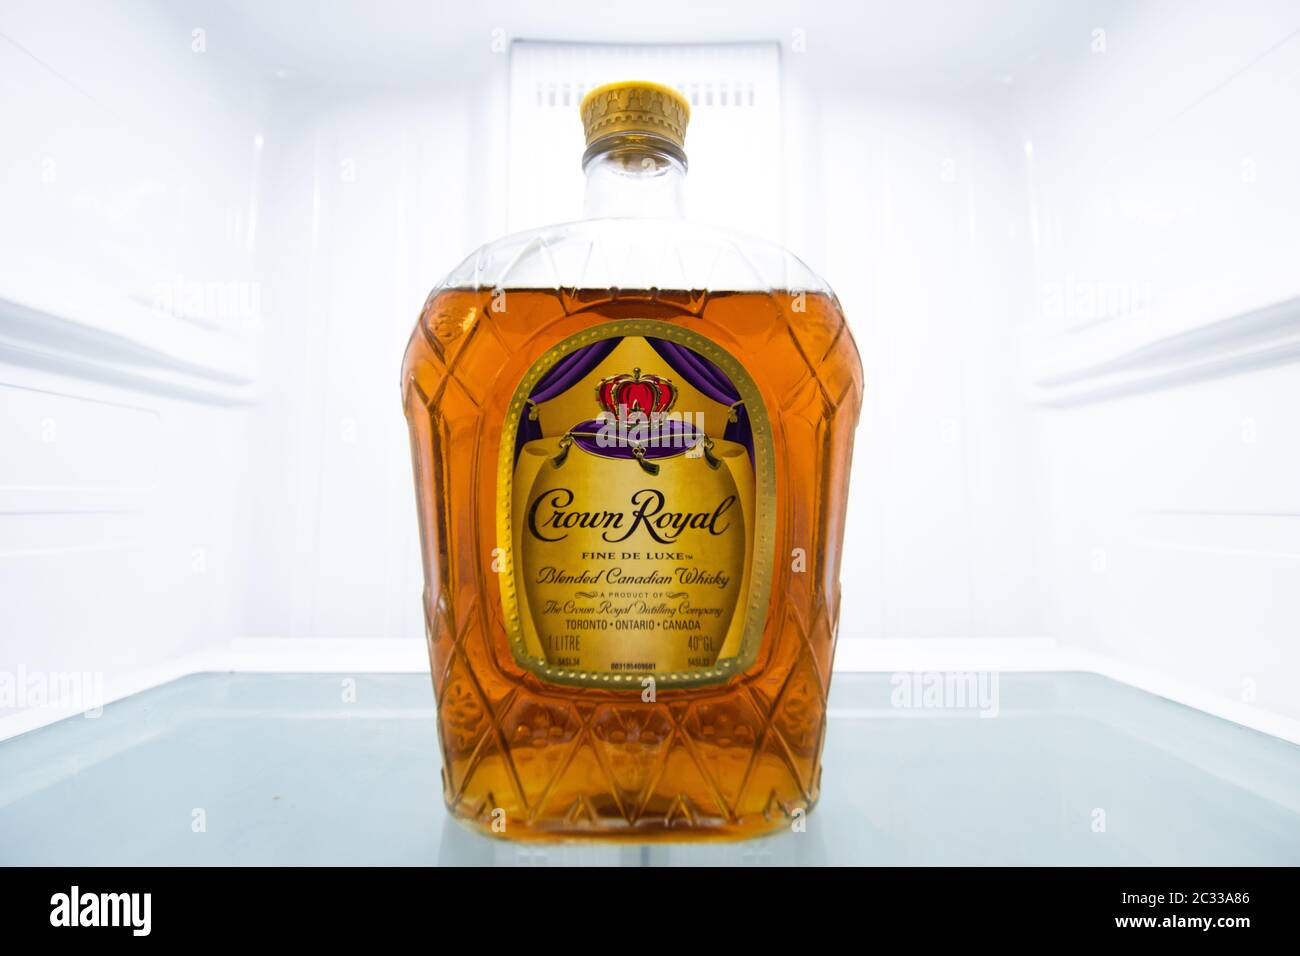 Crown Royal Bottle High Resolution Stock Photography And Images Alamy Ww review #1 crown royal monarch (batch 10). https www alamy com bottle of crown royal in an empty fridge image363335622 html